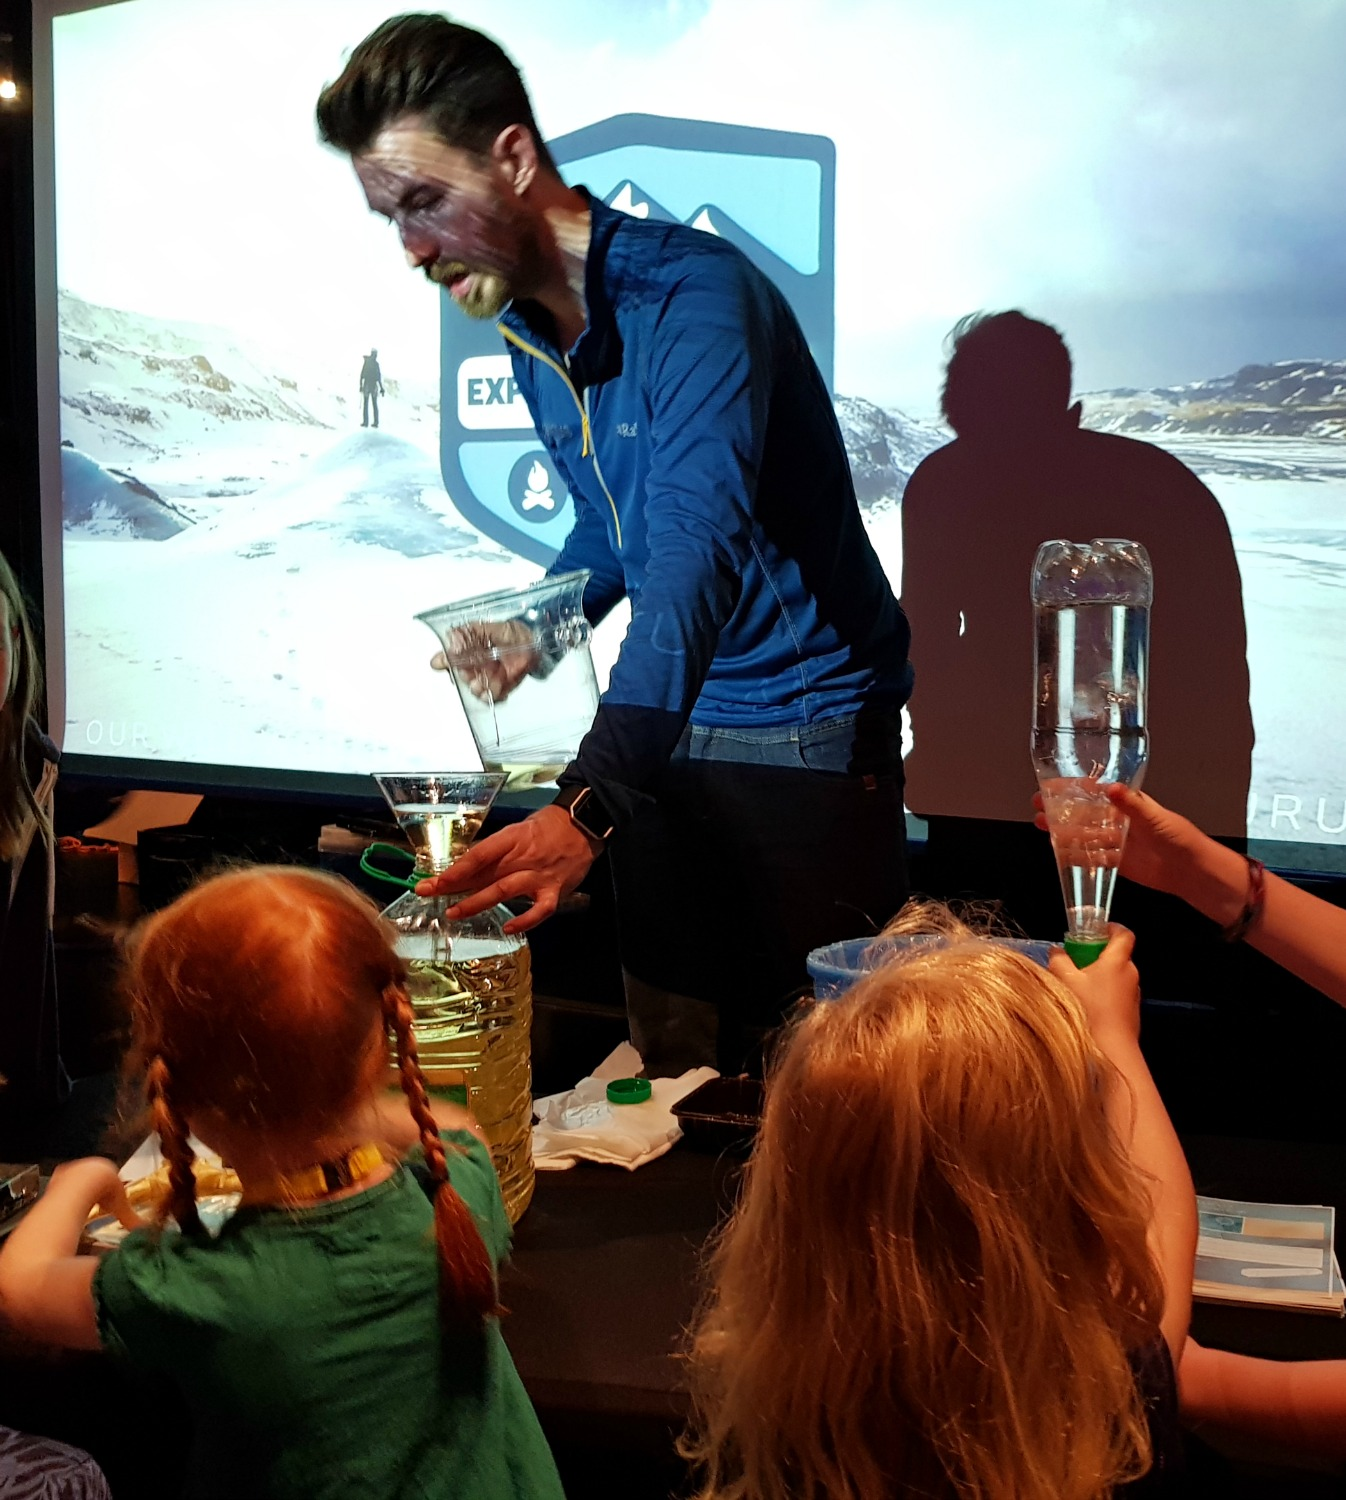 Discovering how a clear funnel disappears in oil as part of the science show - testing out Anturus Explorer Academy kids club activities from Celebrity Cruises